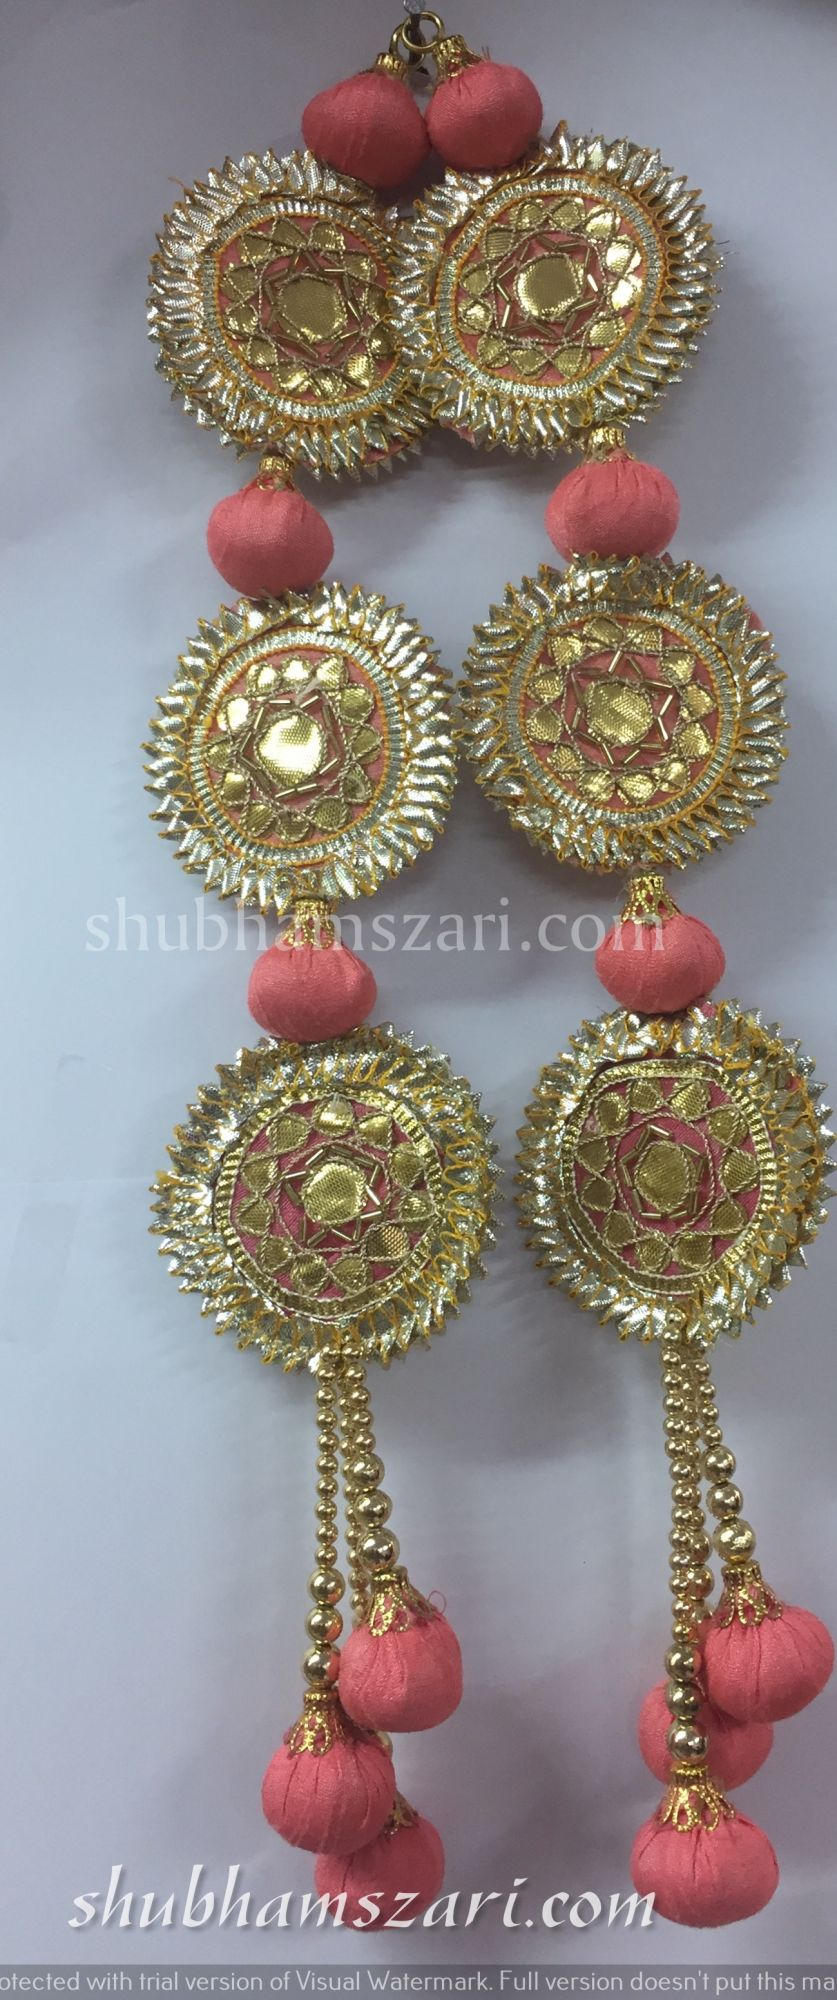 Shubhams long gajri colour full round sikka shape gota patti work